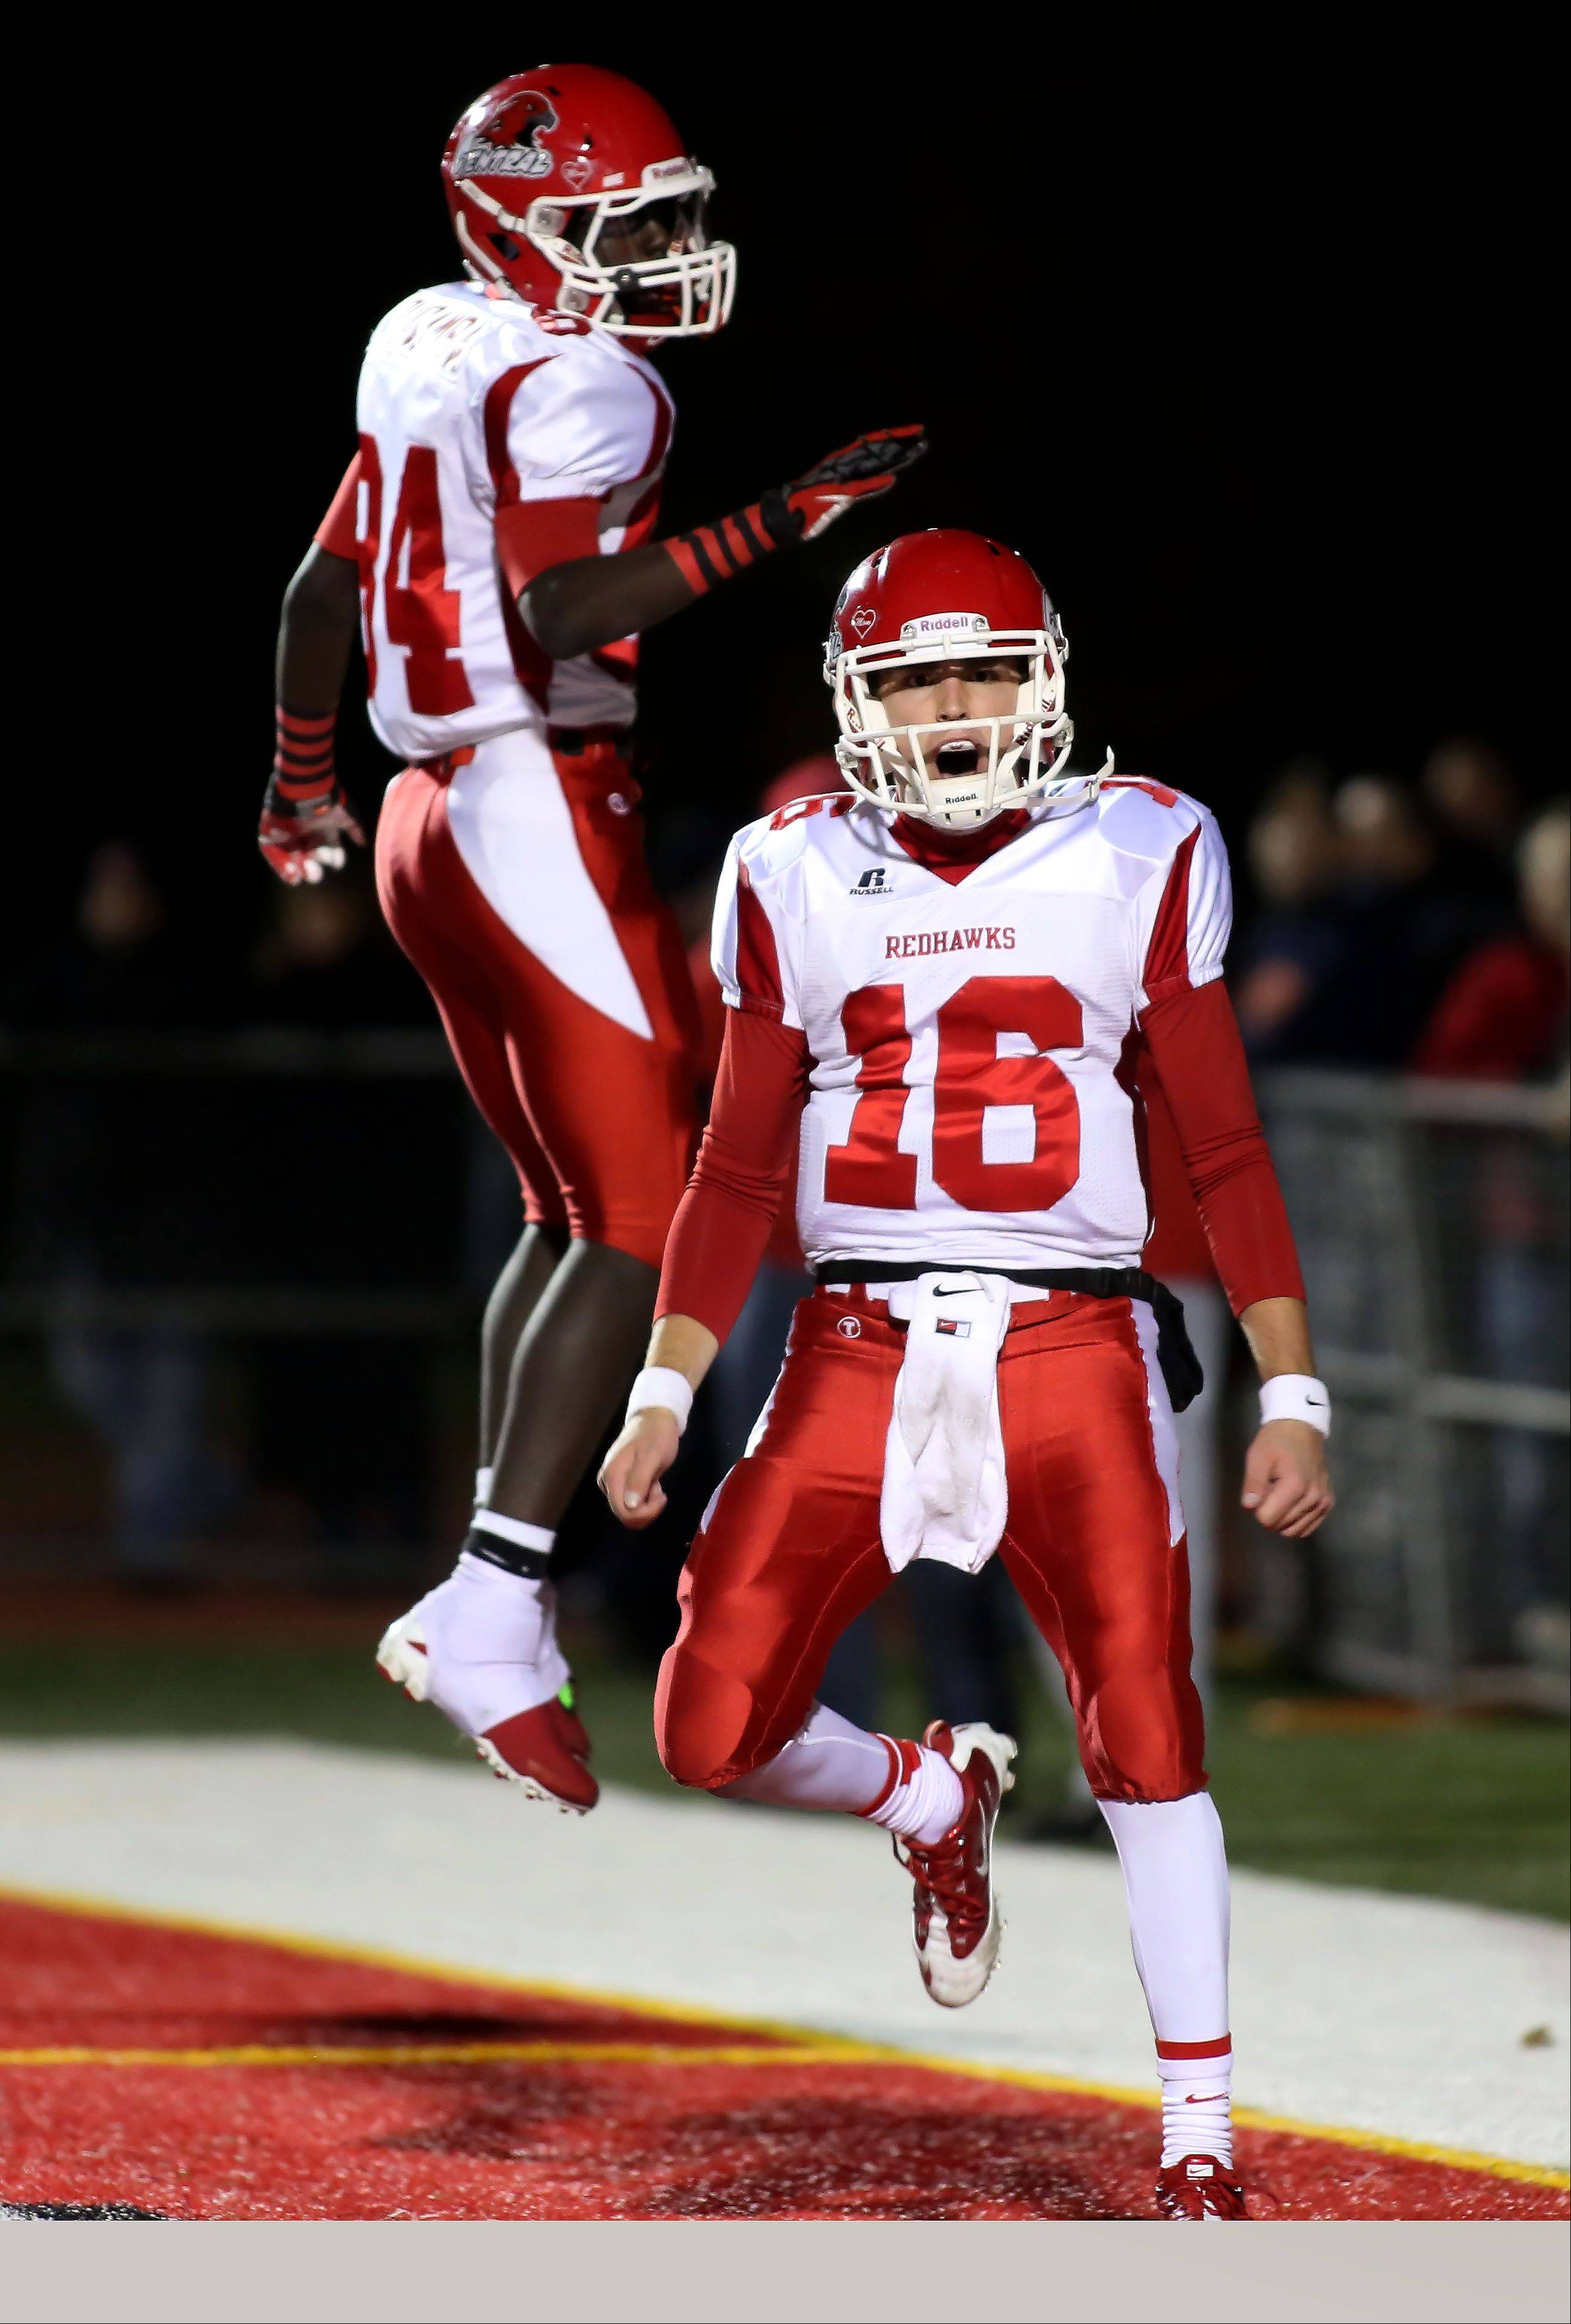 Naperville Central returns with a win